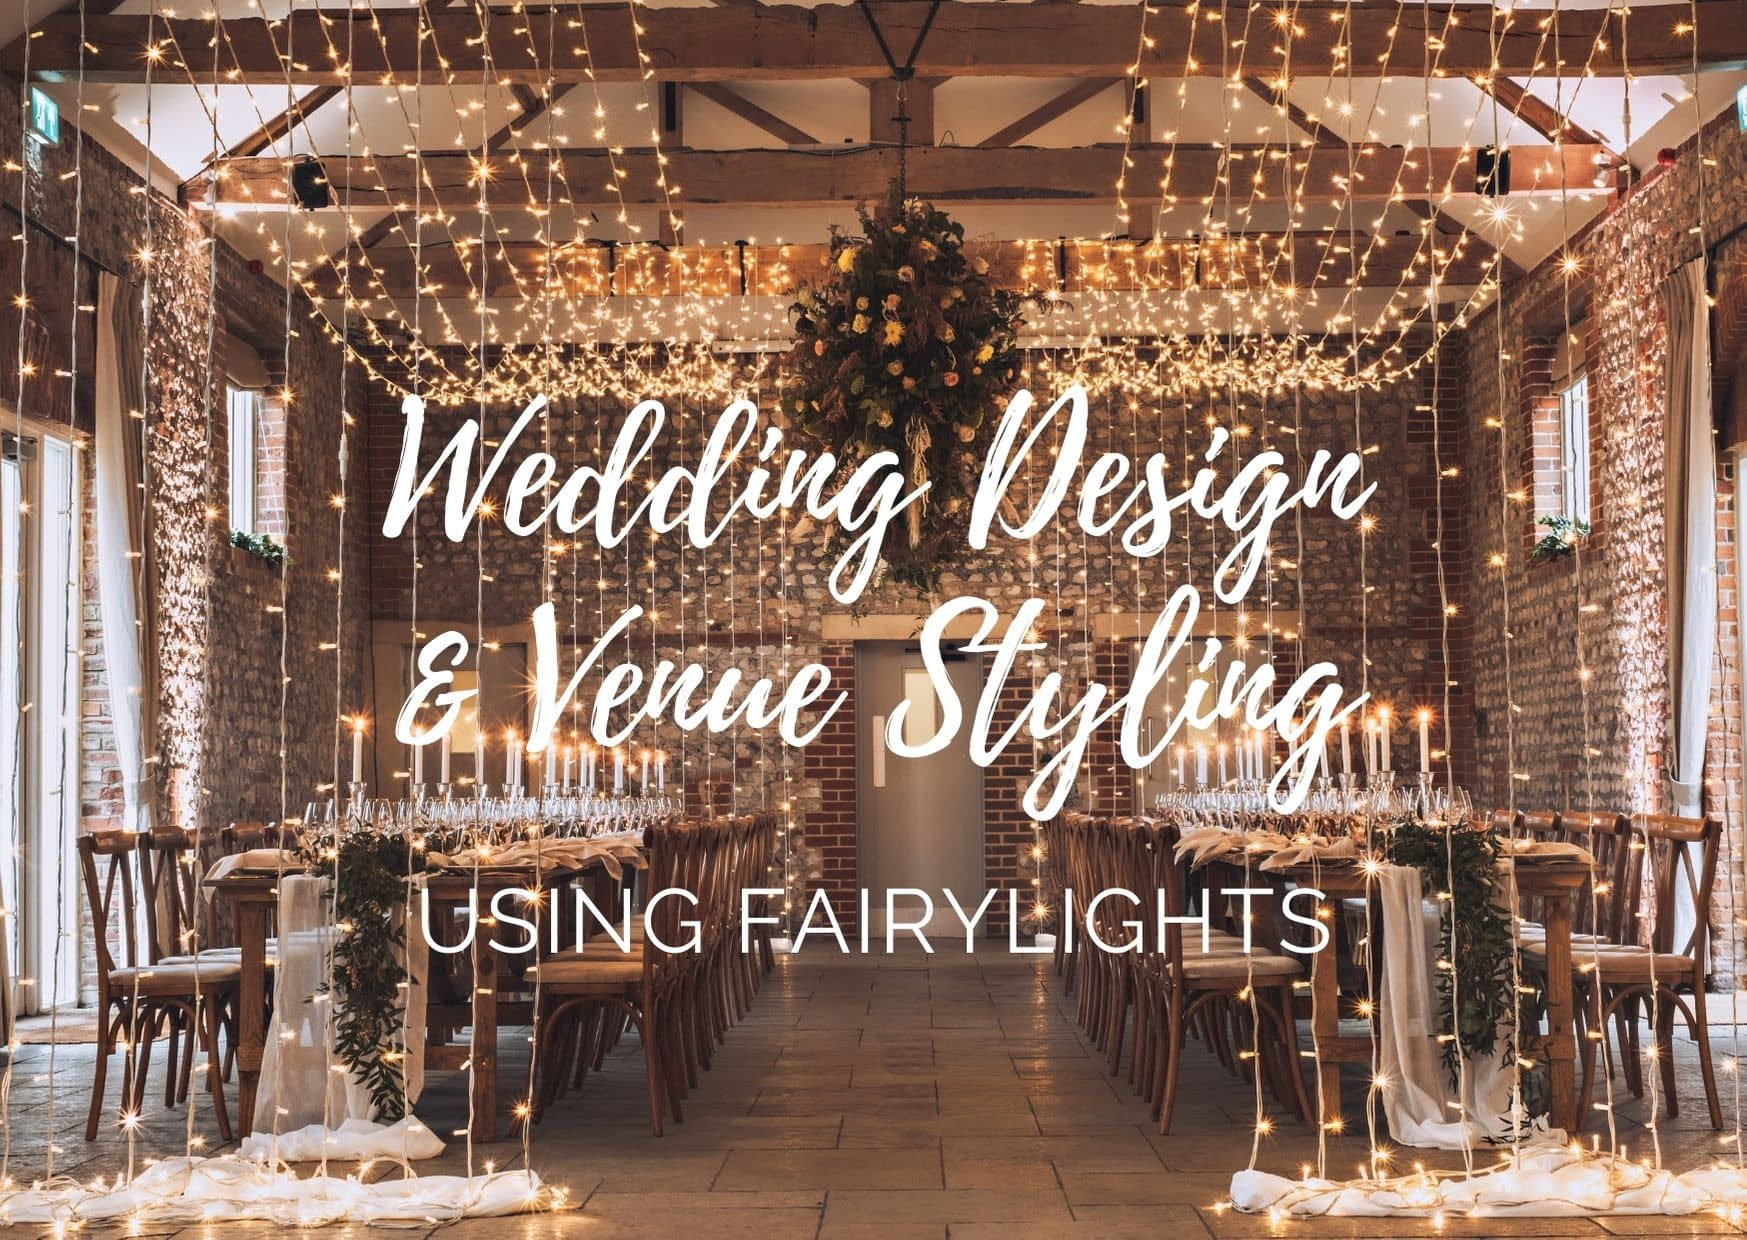 Room styling using fairylights